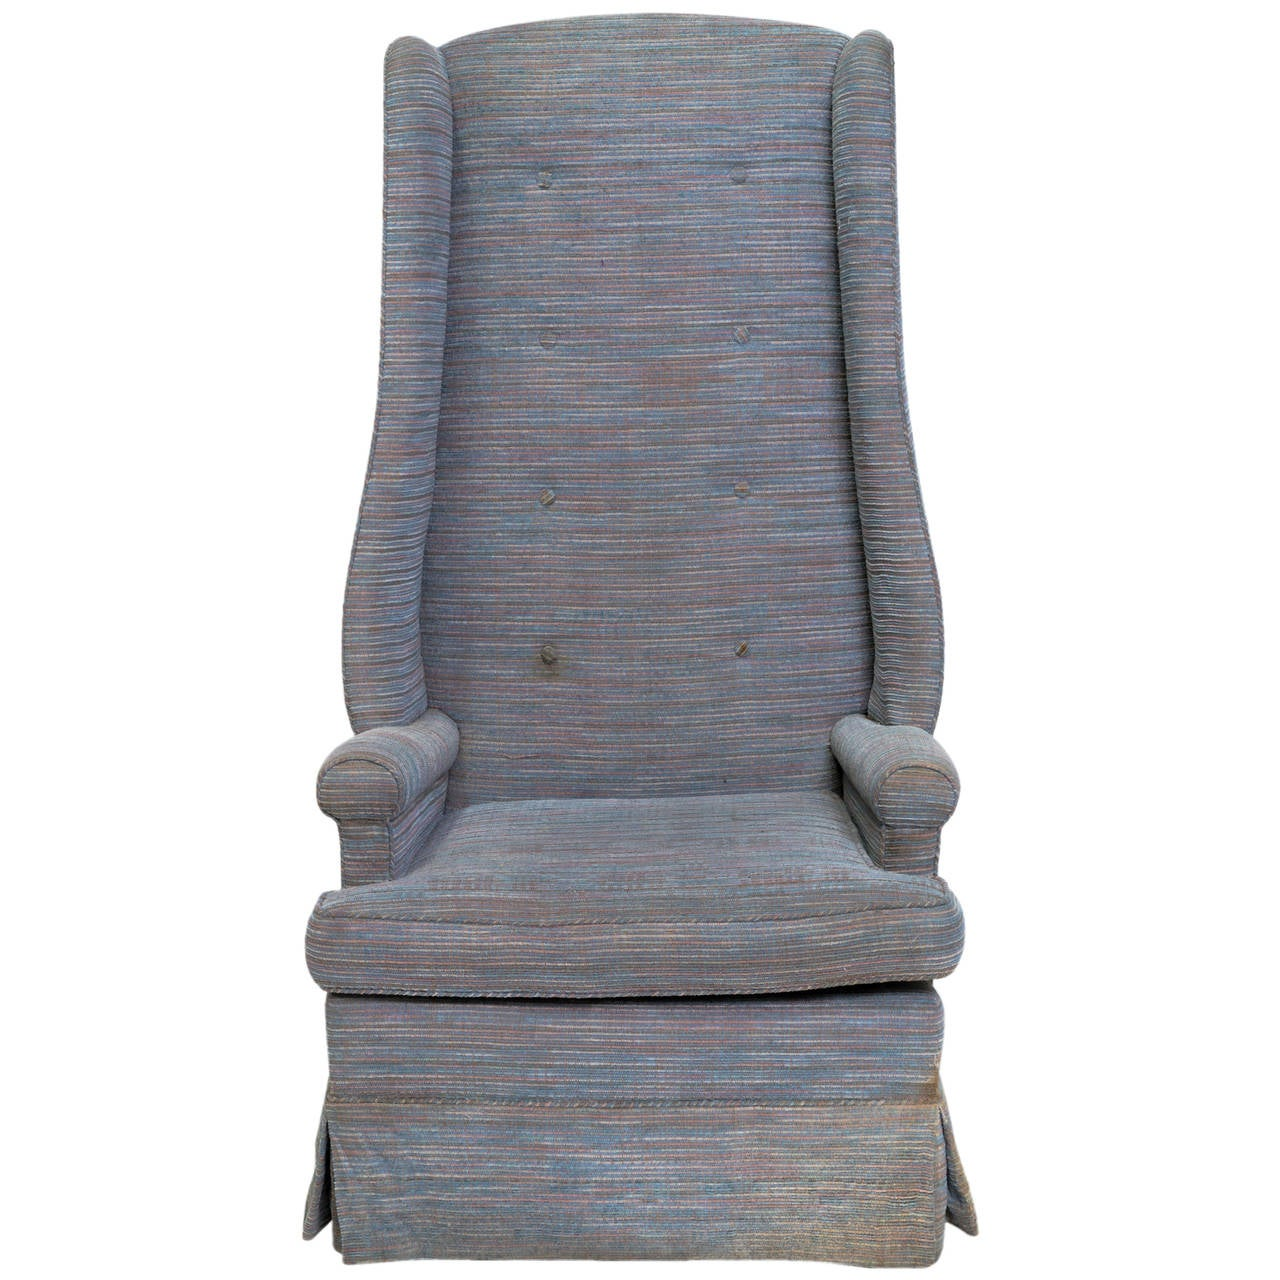 High Back Upholstered Chair For Sale at 1stdibs